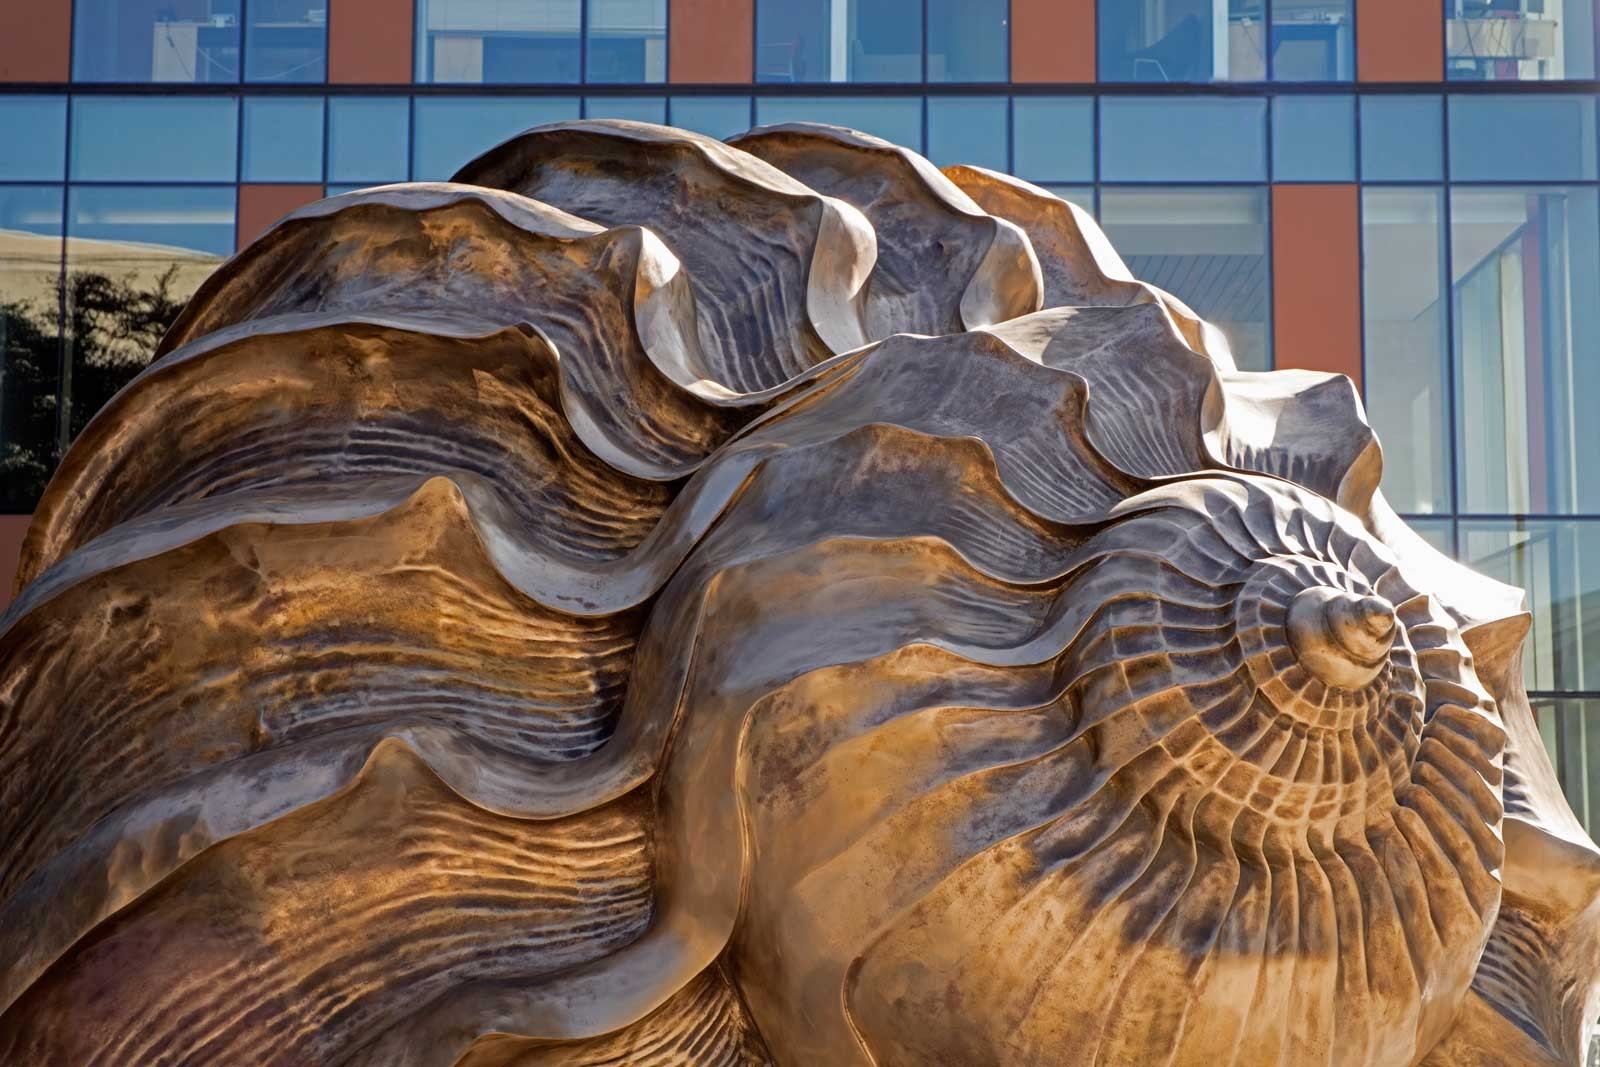 The spiral of the large bronze shell with a building behind it